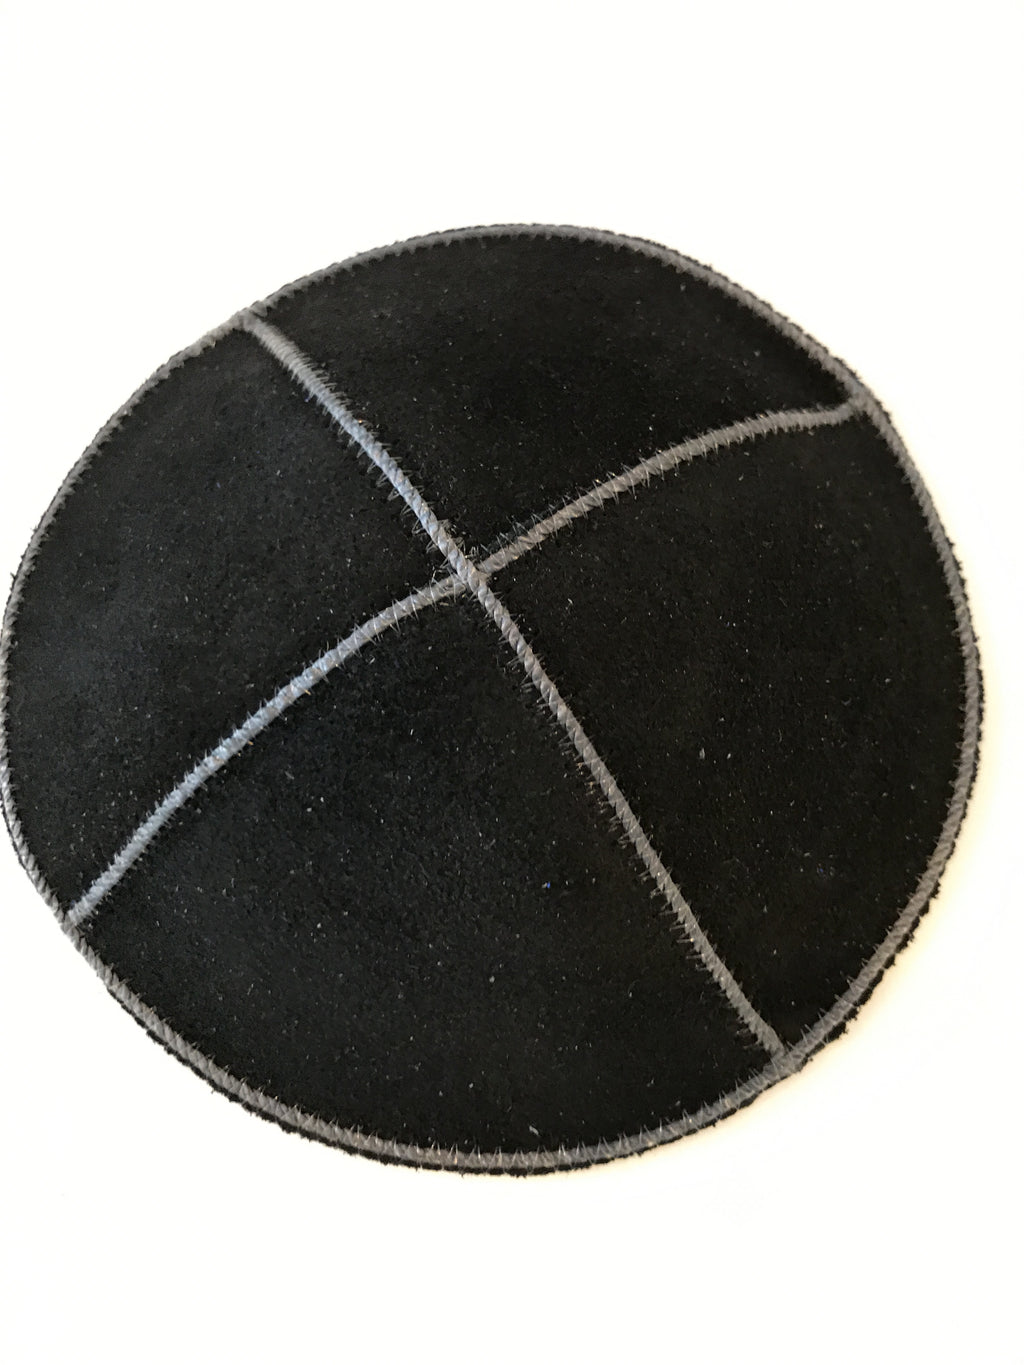 Black Suede Kippah with Trim